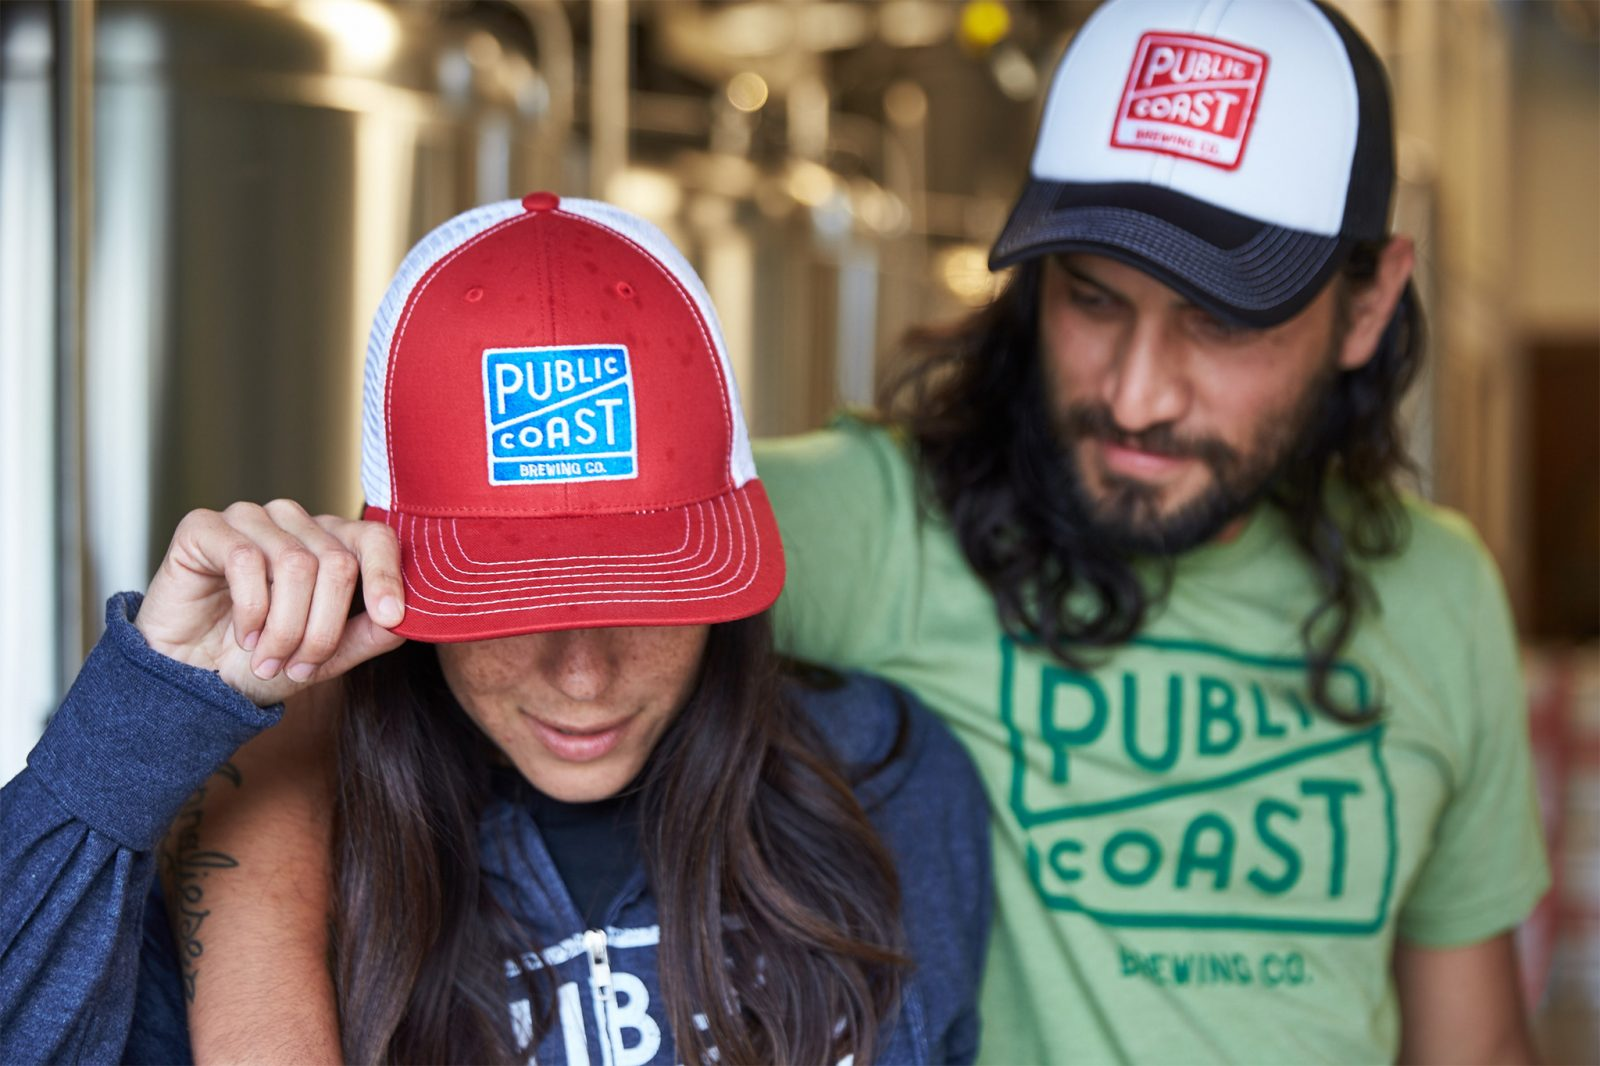 Public Coast Brewing Co. Hats